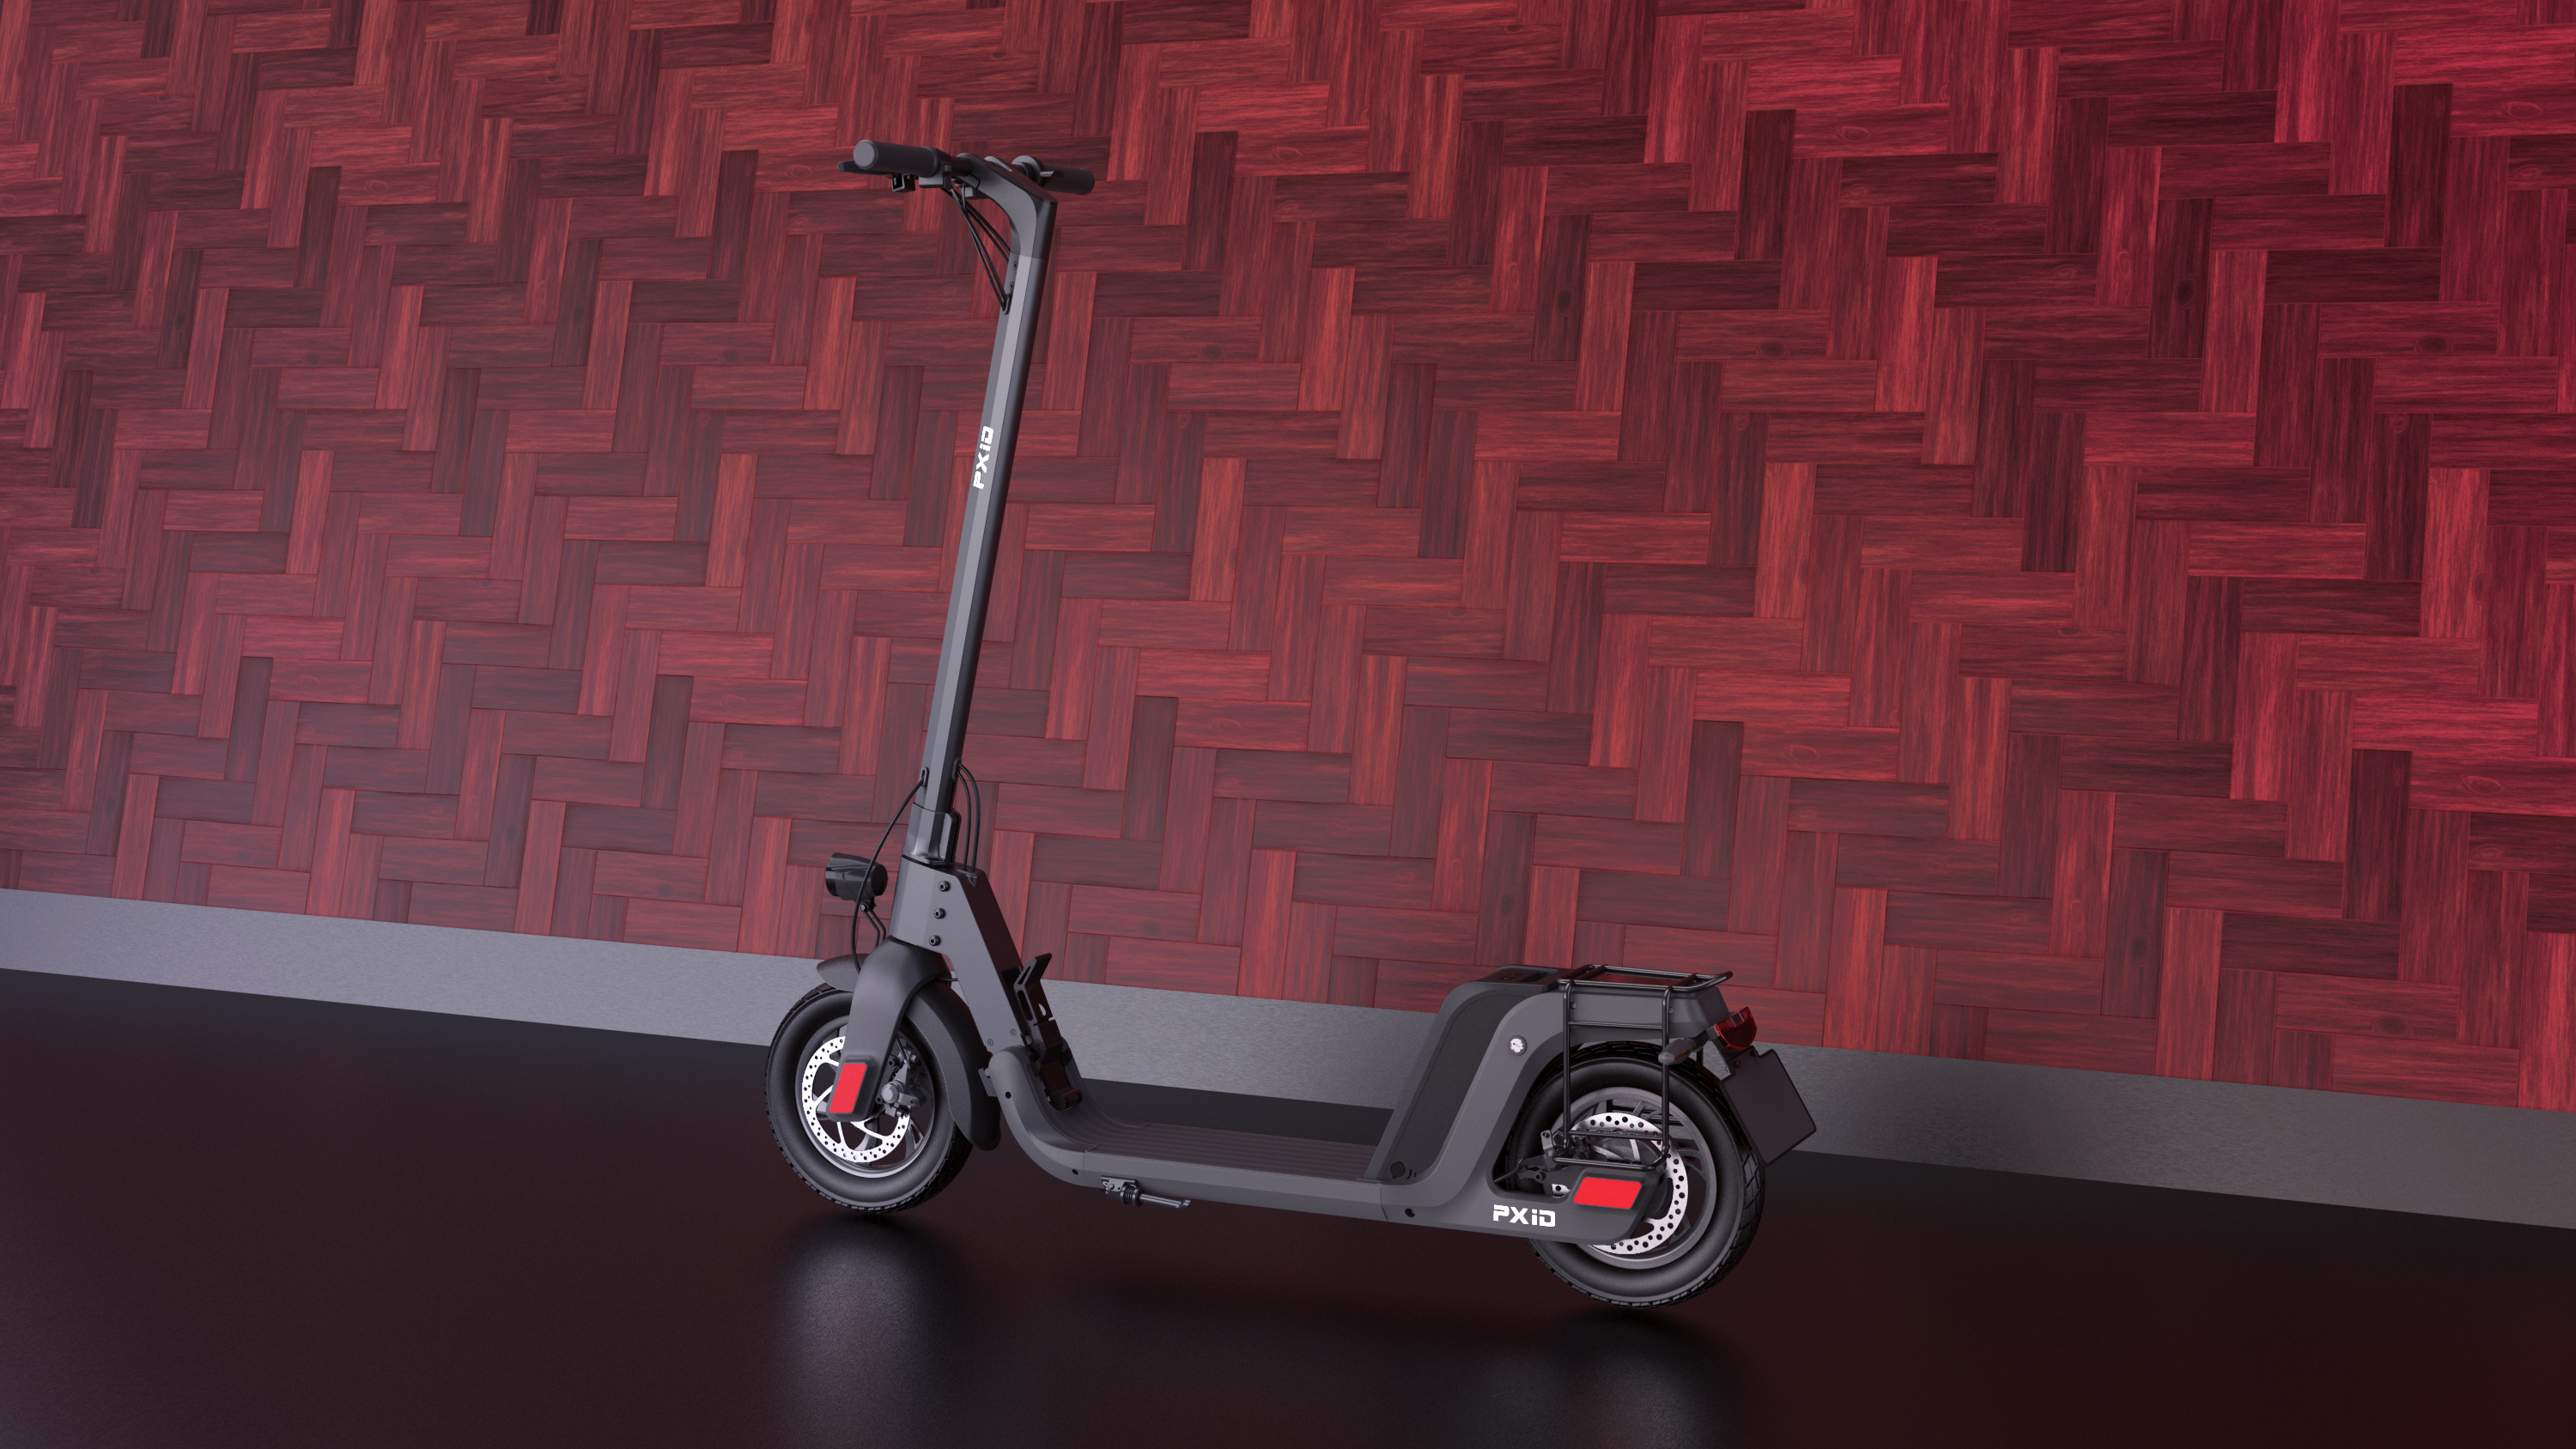 PXID 2020 electric scooter design